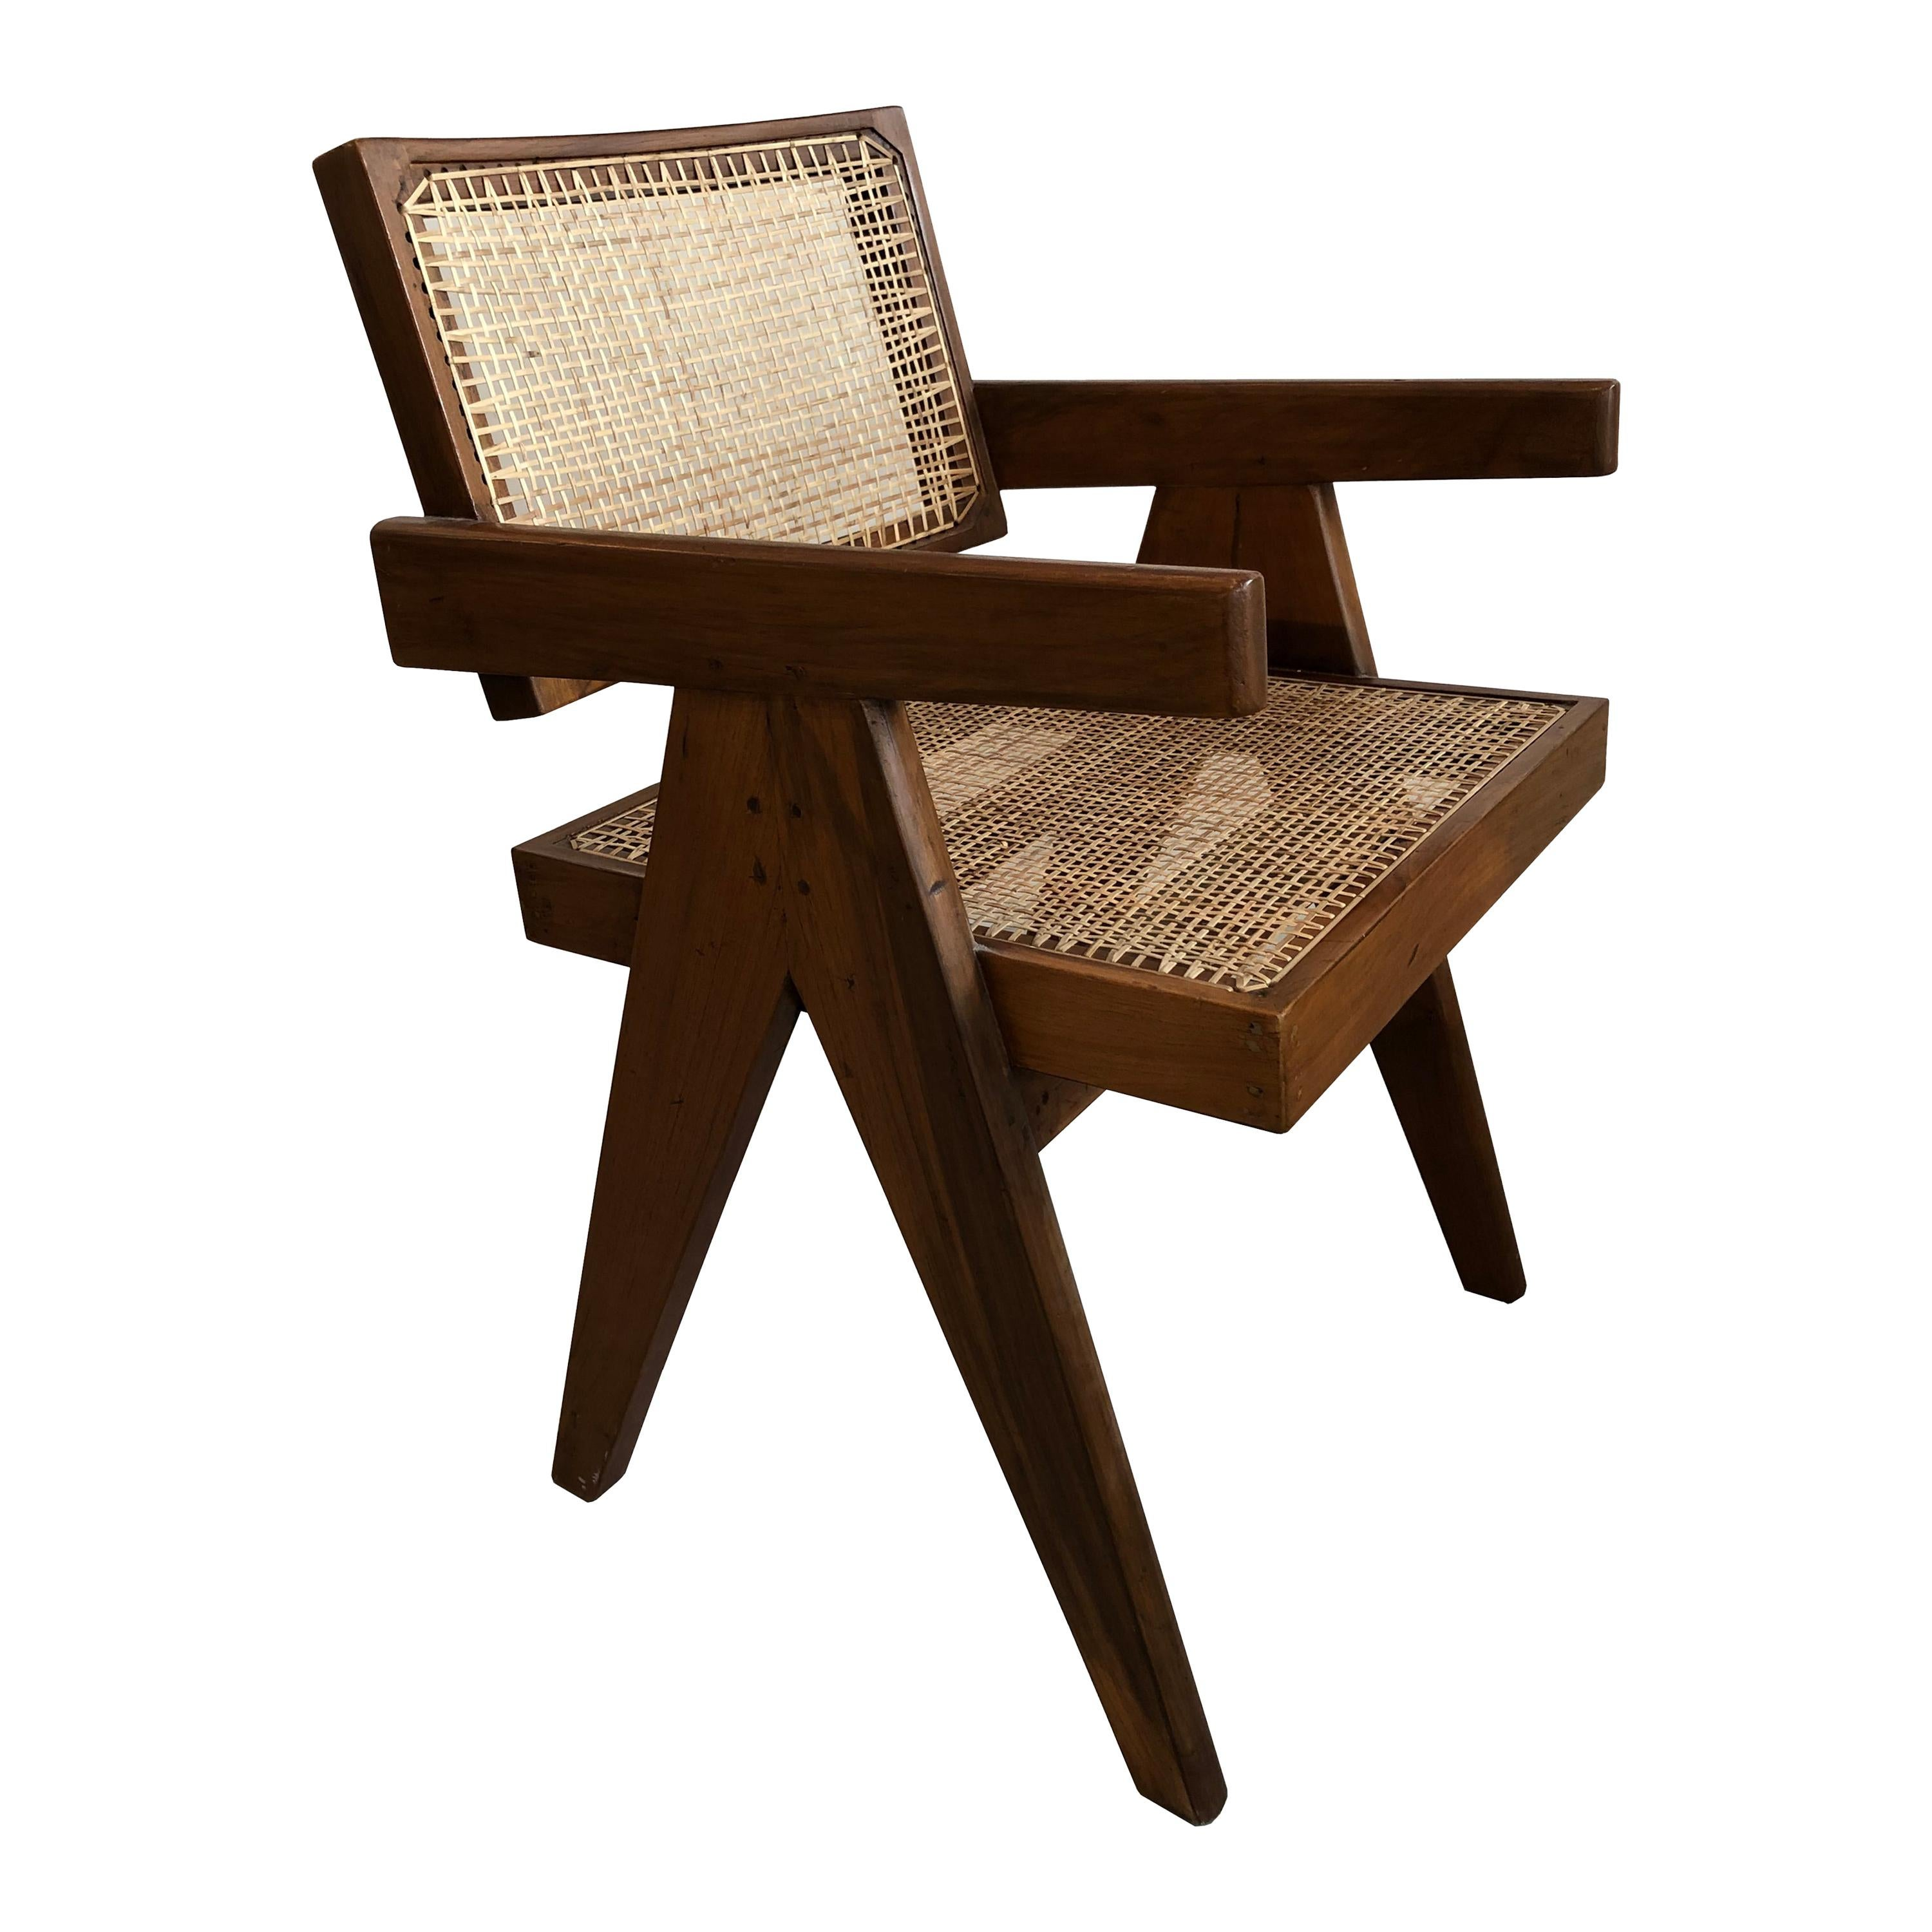 Office Armchair by Pierre Jeanneret from Chandigarh, 1950s